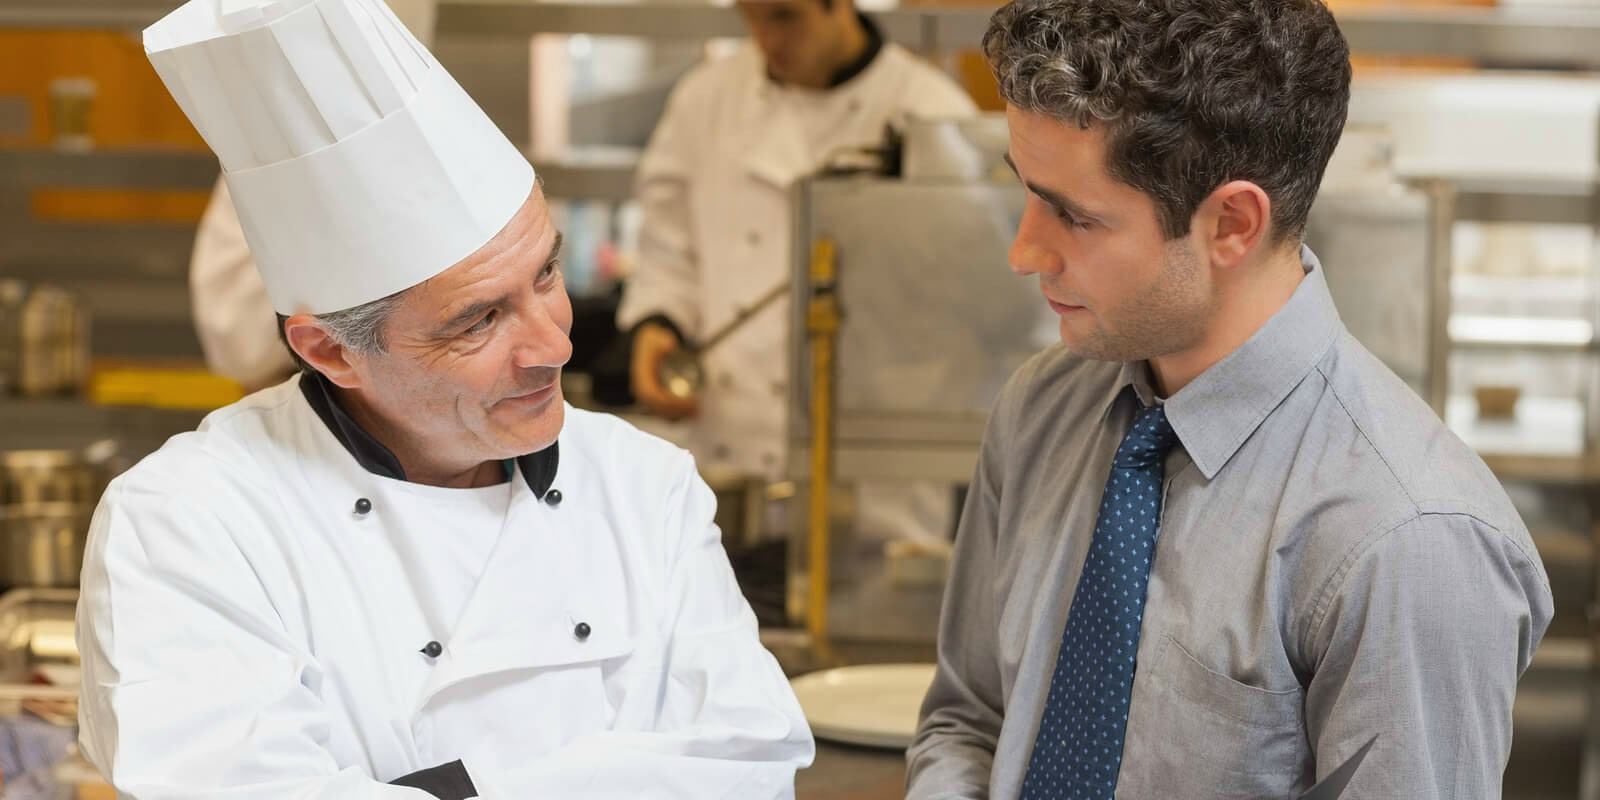 A chef, one of the most egotistical workers